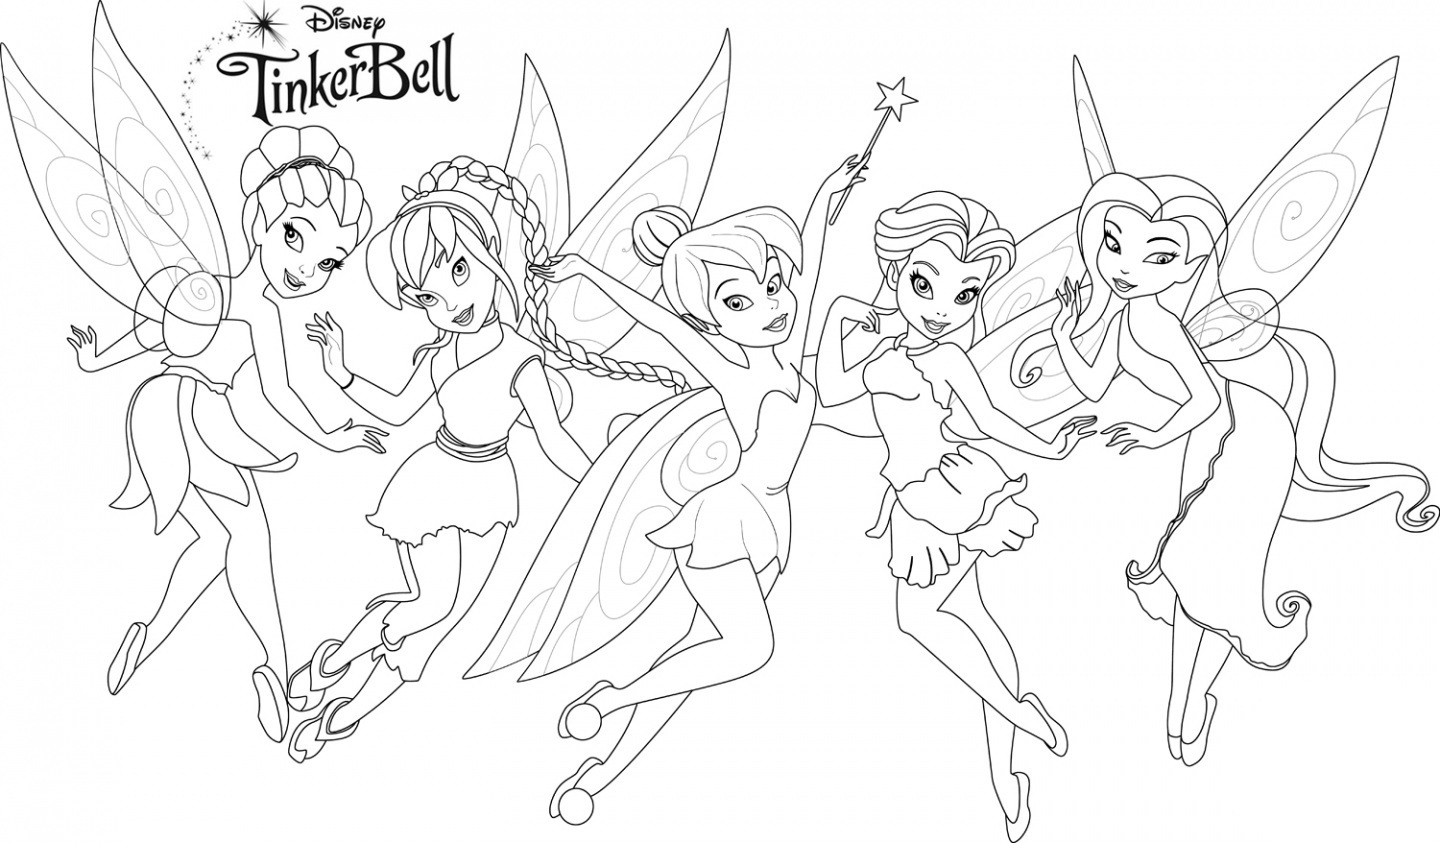 tinkerbell coloring sheets tinkerbell coloring pages quotstrength magicquot gtgt disney coloring tinkerbell sheets